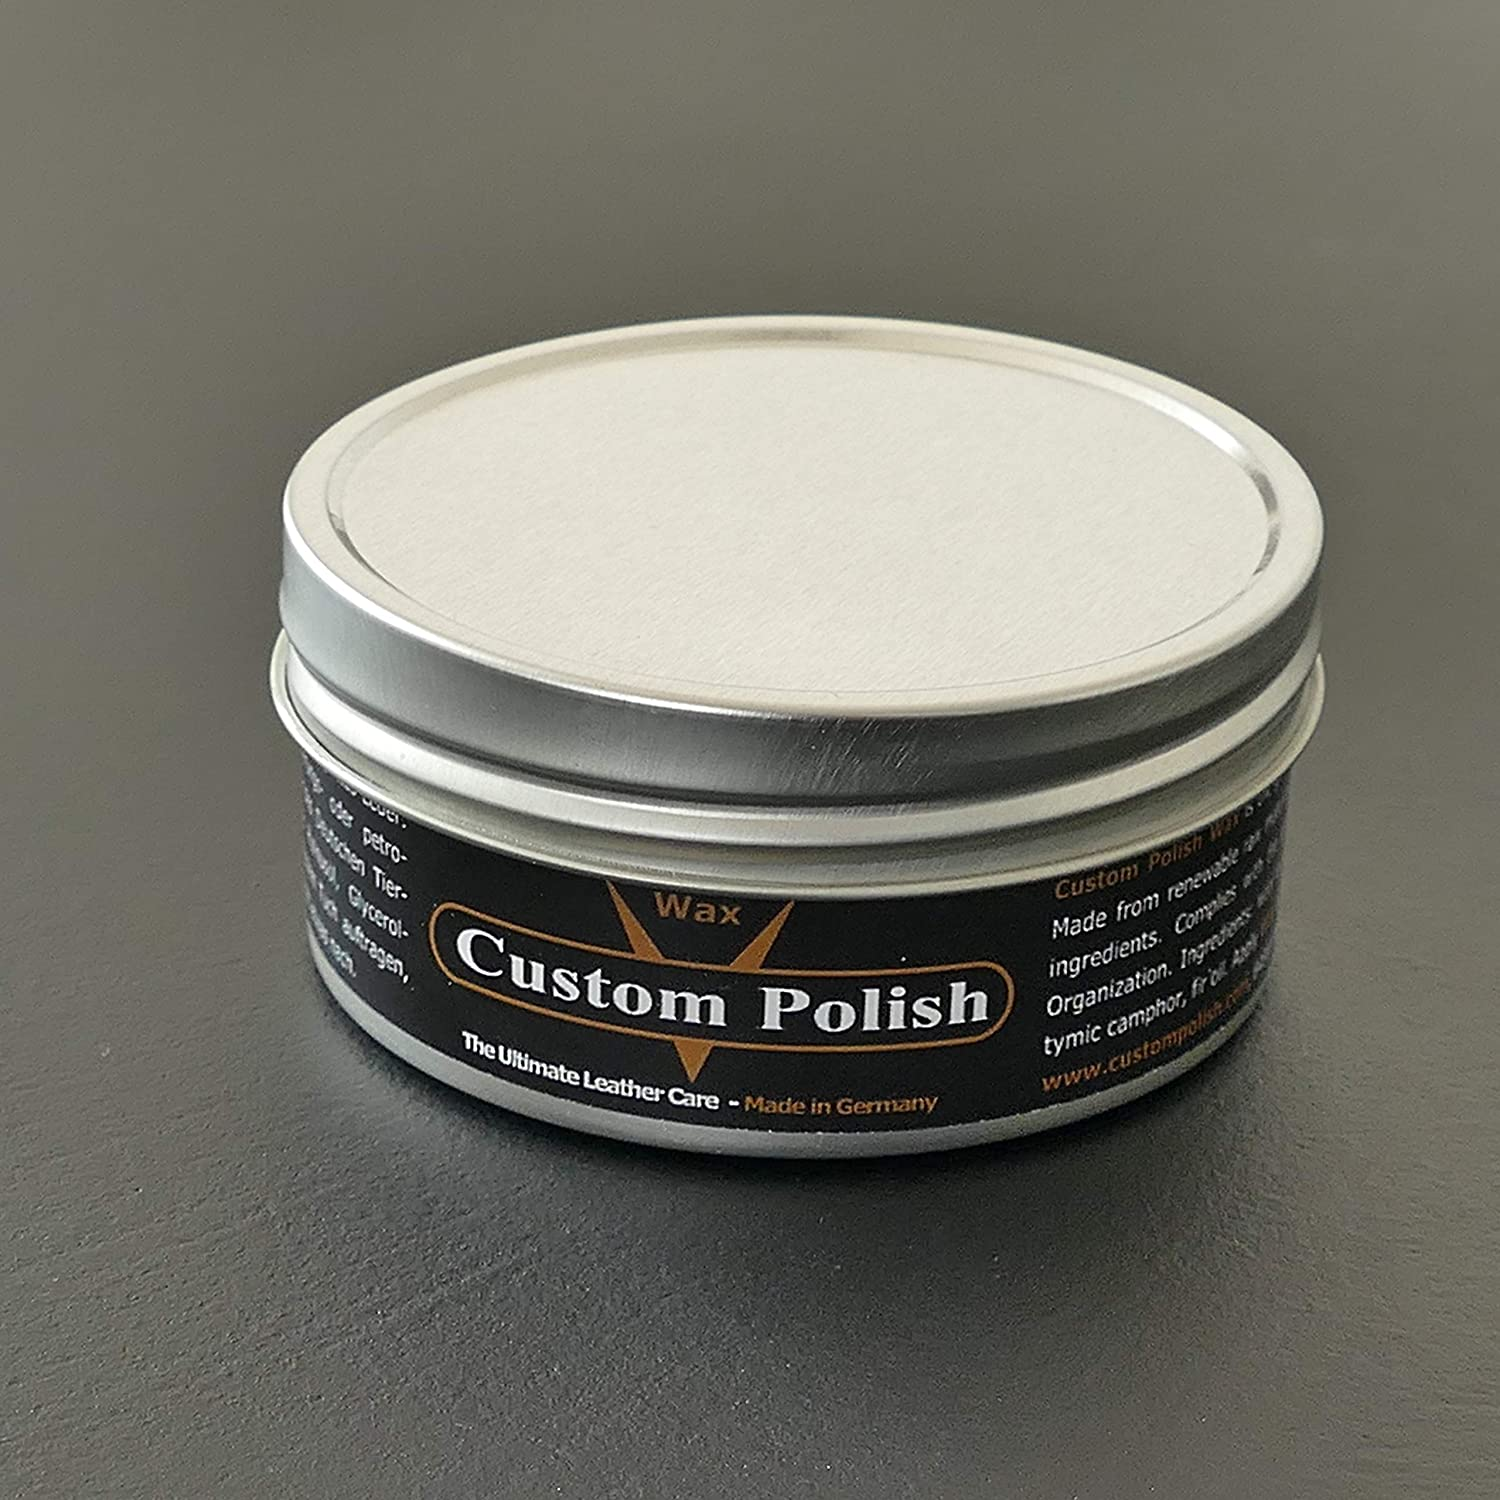 CUSTOM POLISH Wax - 150 ML - El Cuidado Natural e Innovador ...